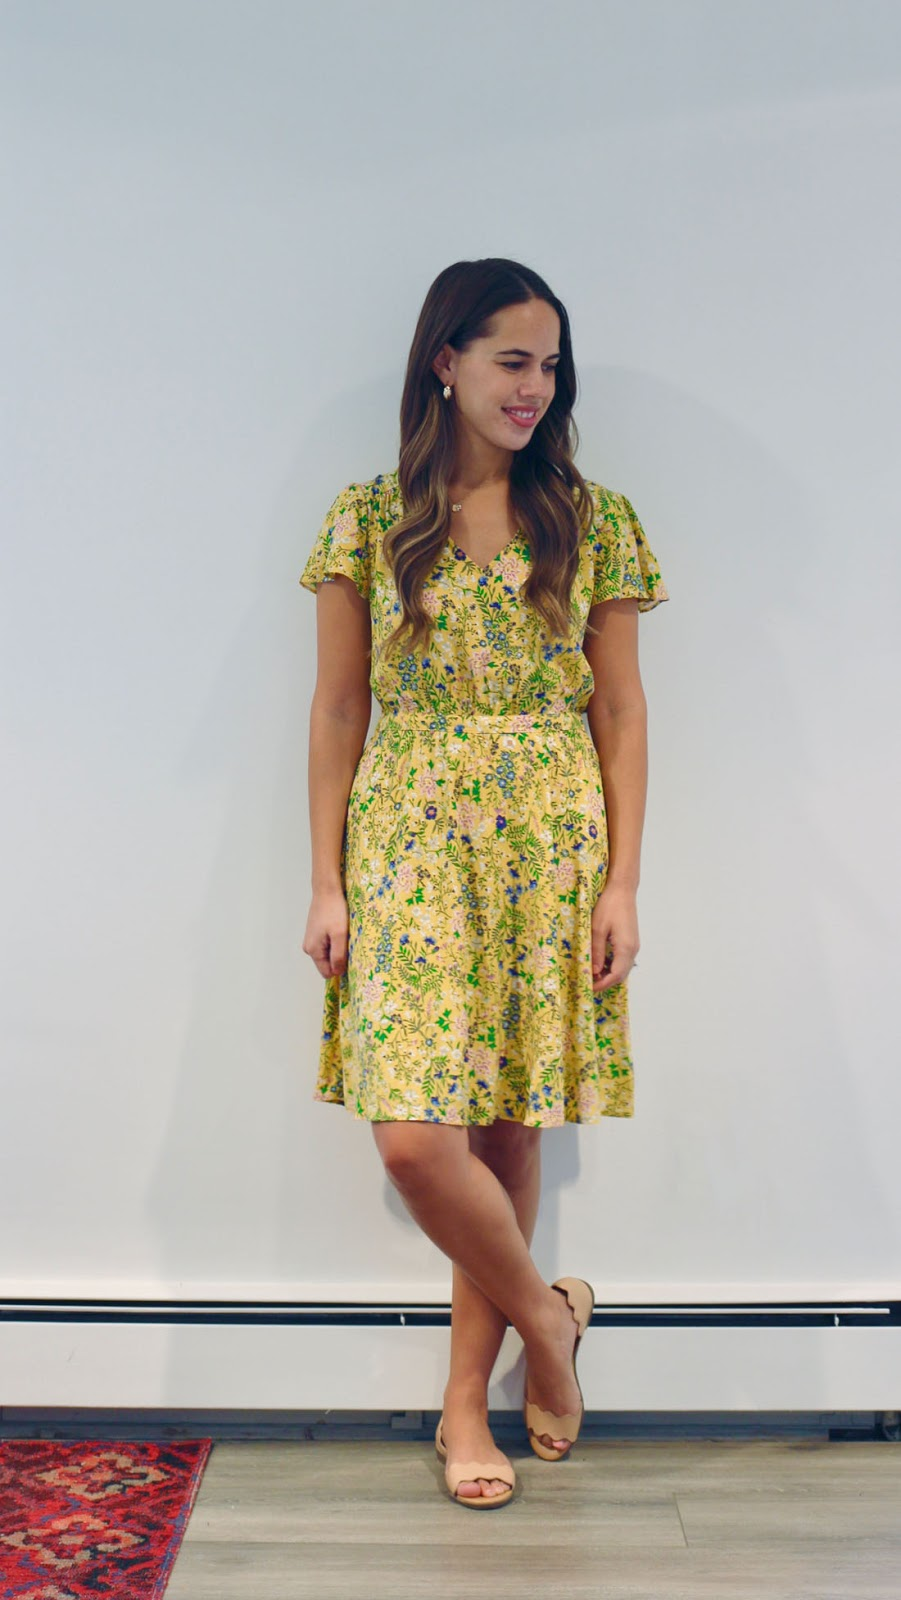 Jules in Flats -  Yellow Floral V-Neck Dress (Business Casual Summer Workwear on a Budget)